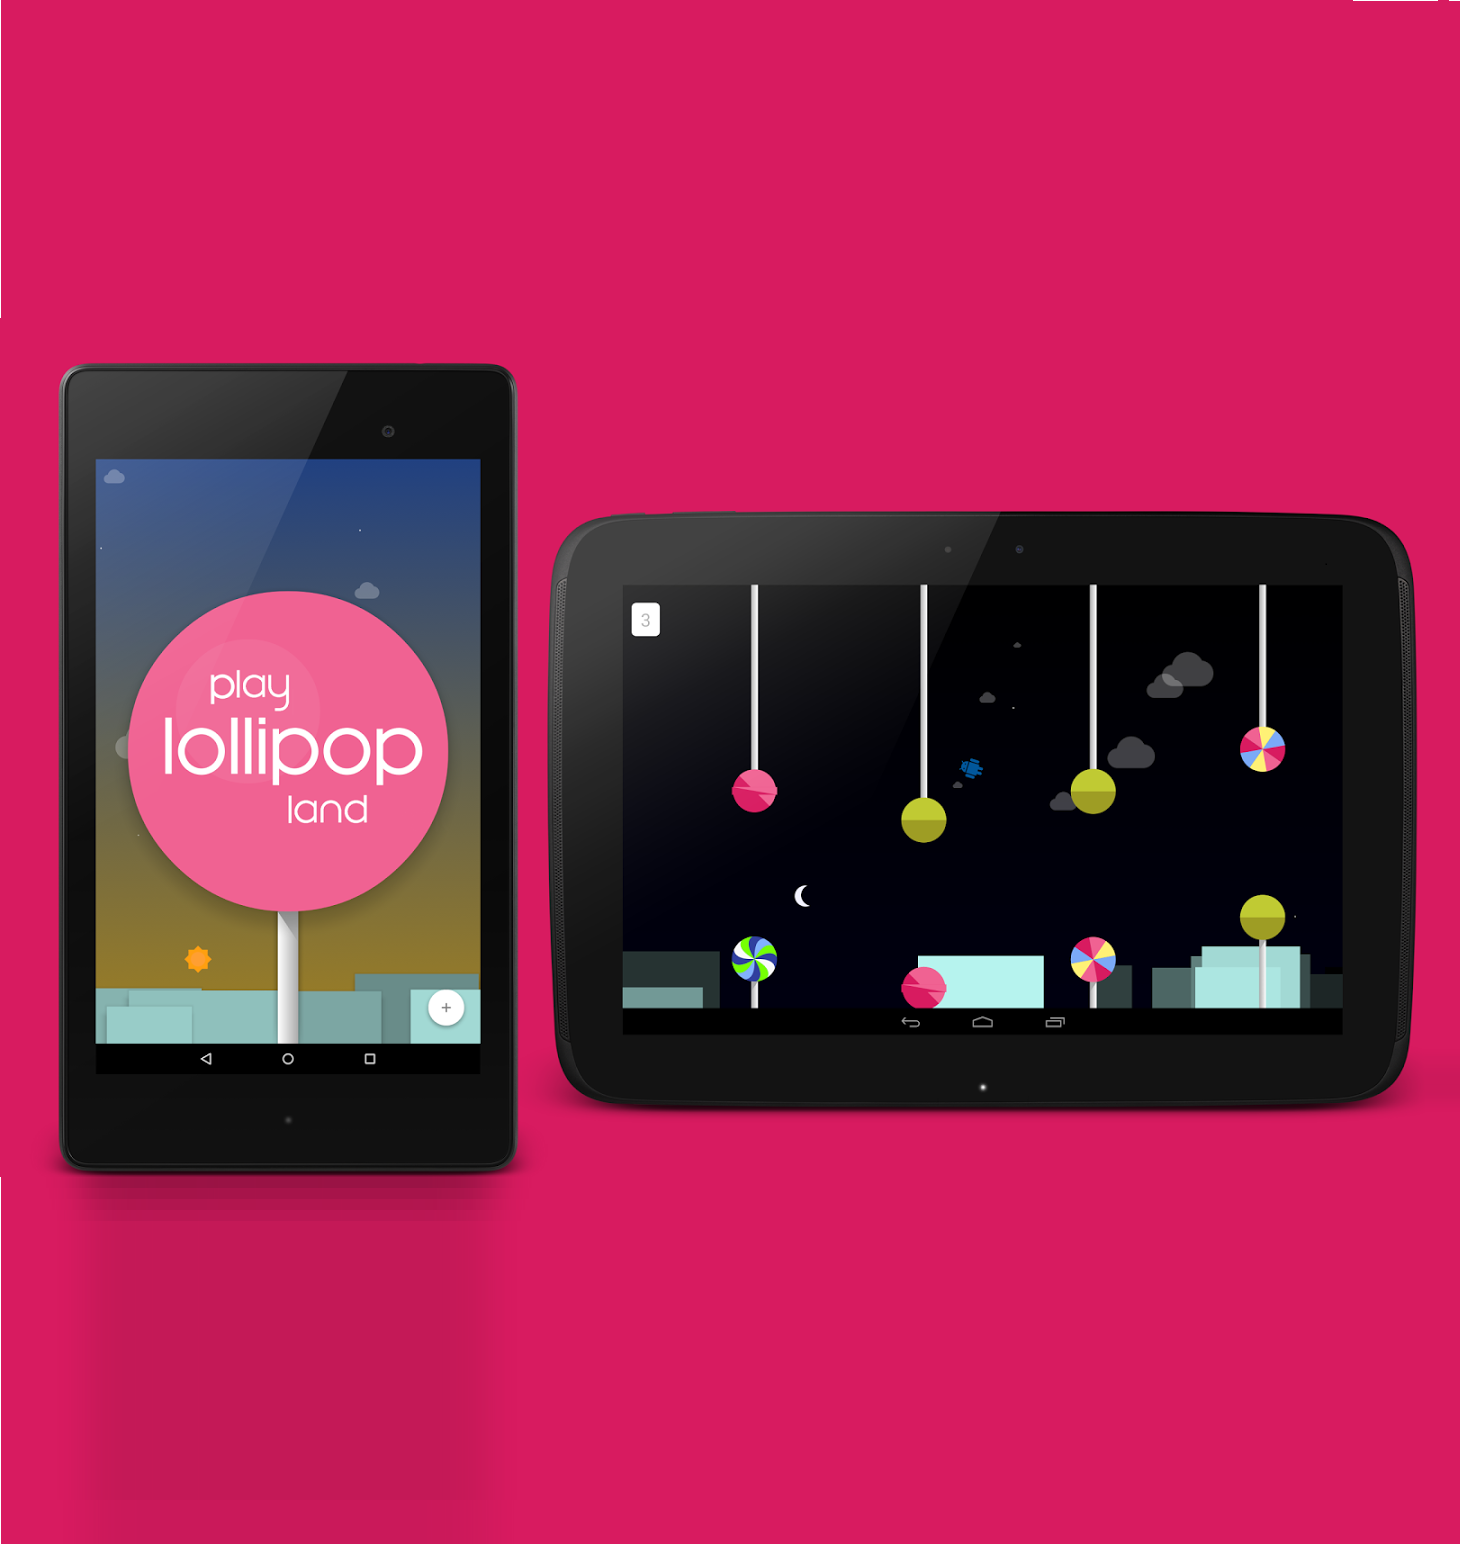 Android Lollipop Features a Hidden Flappy Bird game